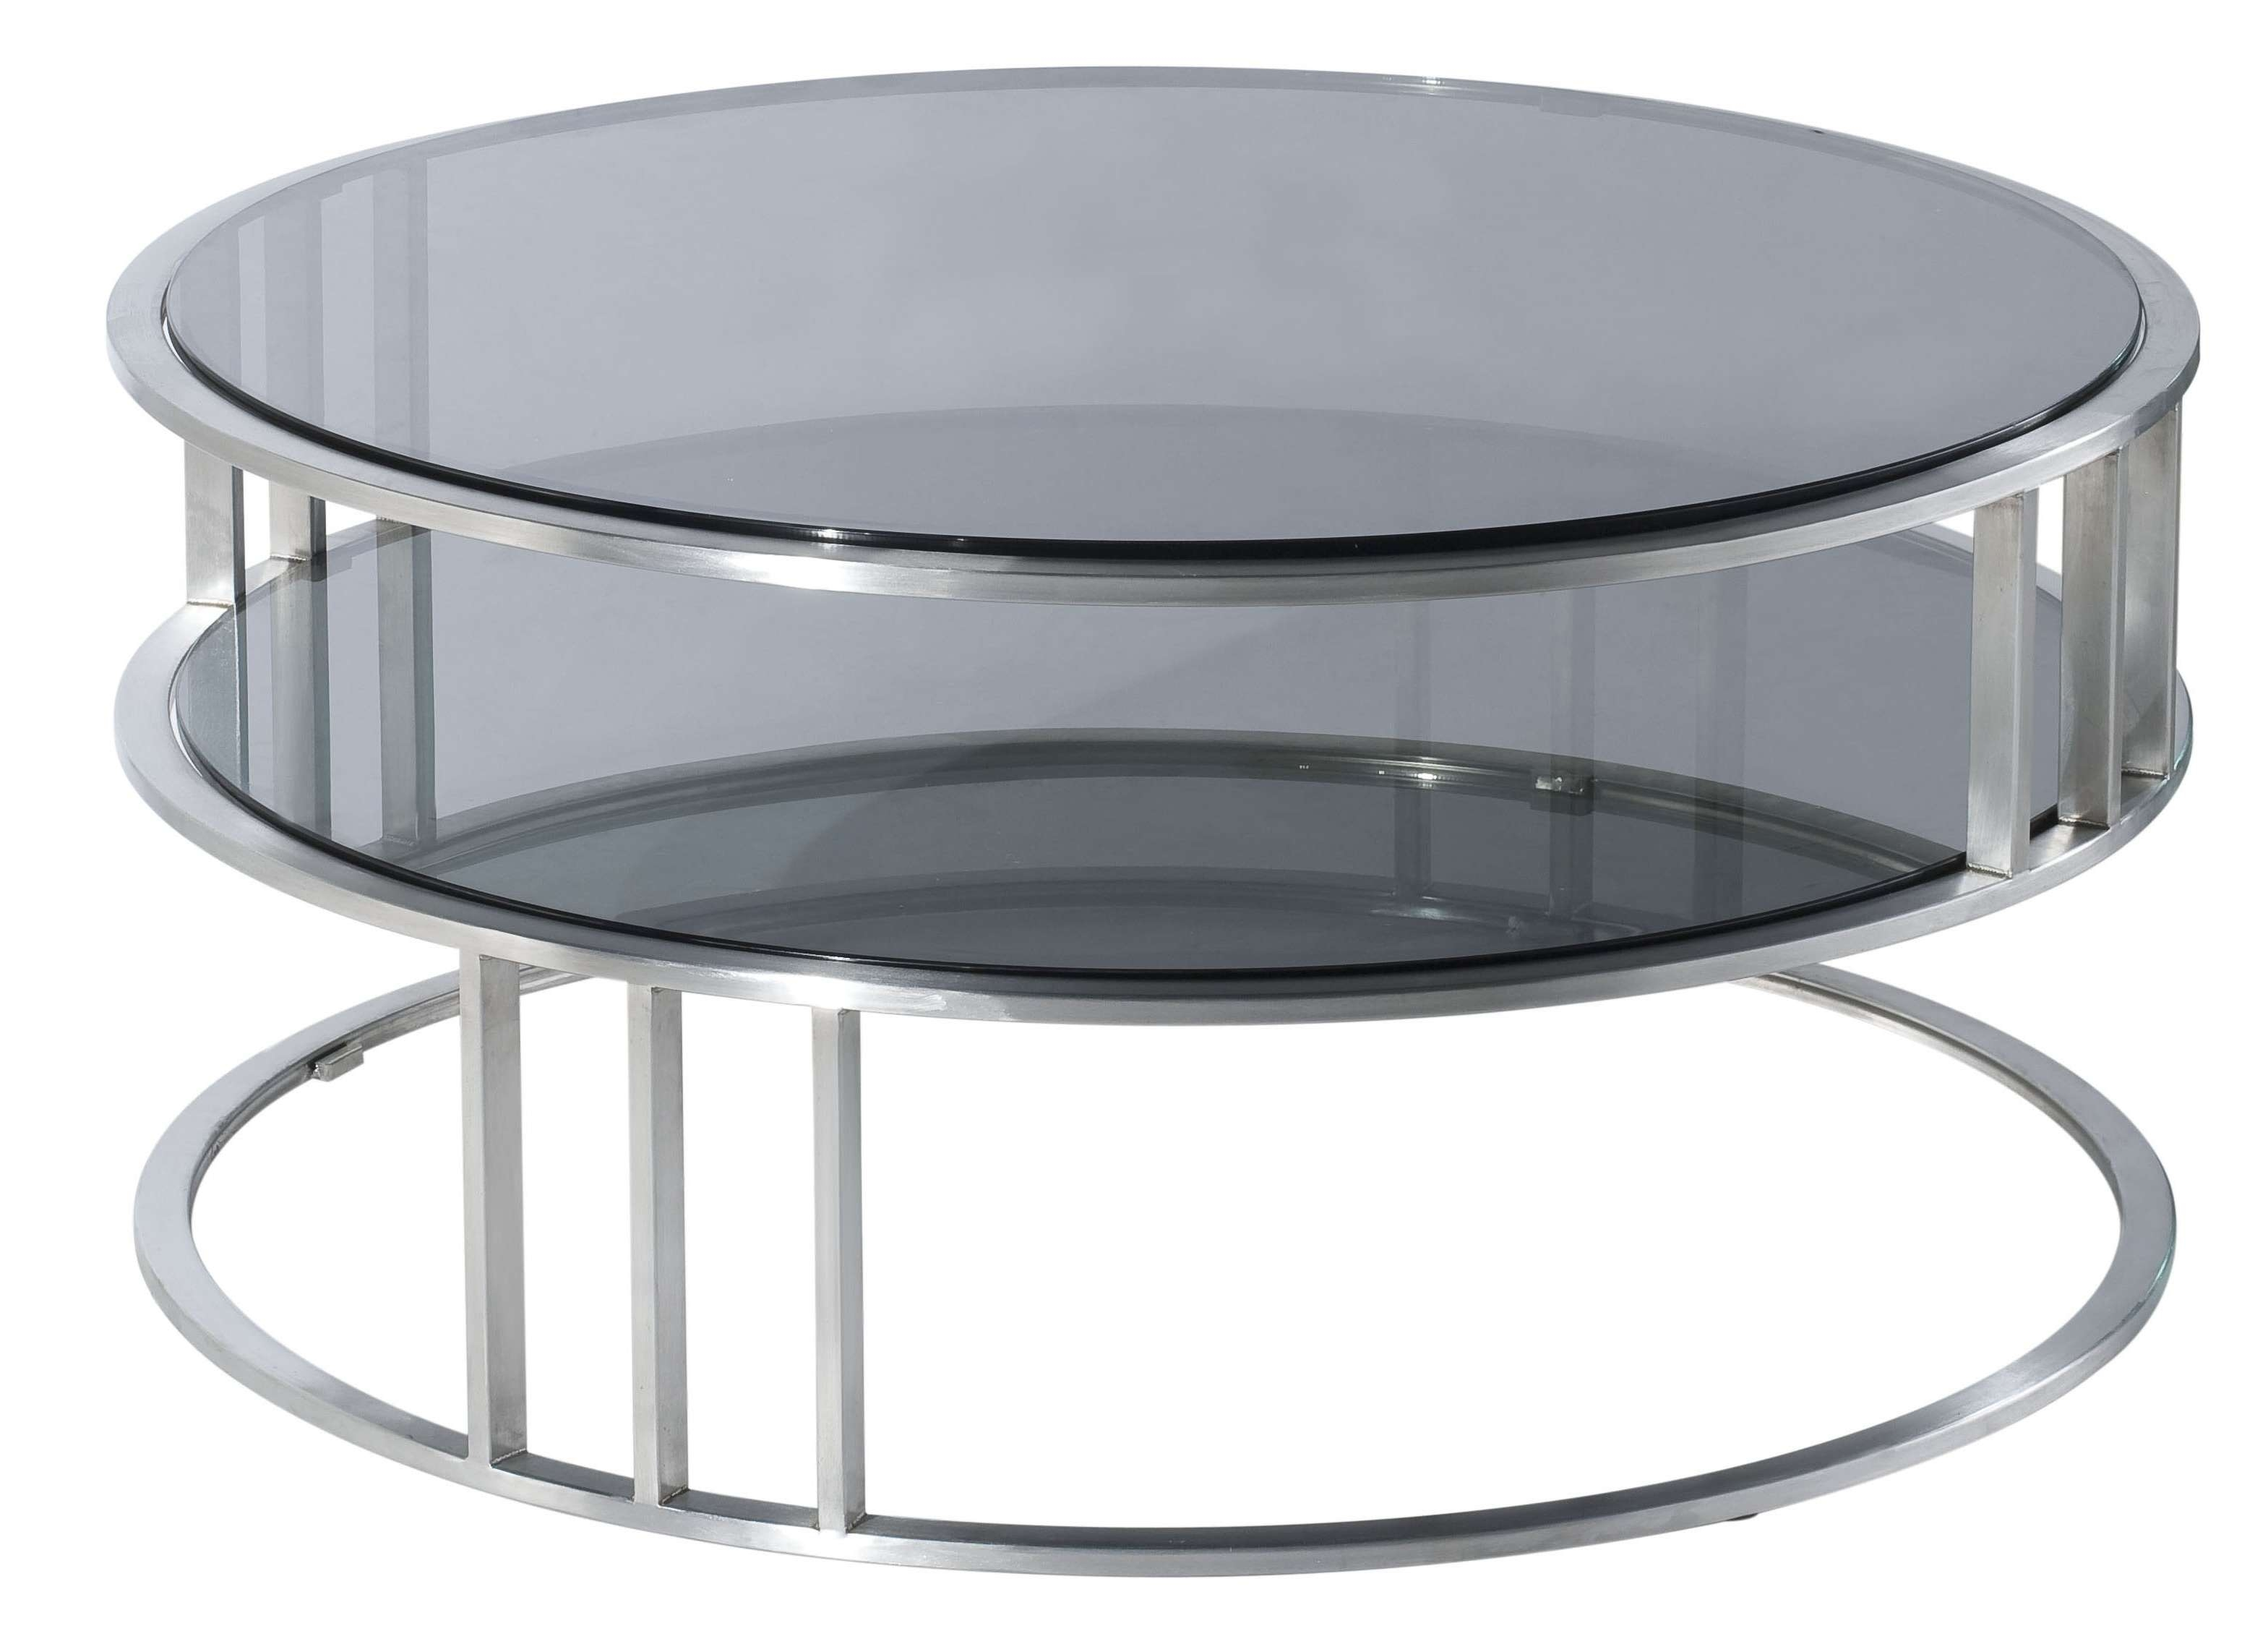 Contemporary Modern Round Coffee Table With Round Glass Top And In Well Liked Metal Coffee Tables With Glass Top (View 17 of 20)